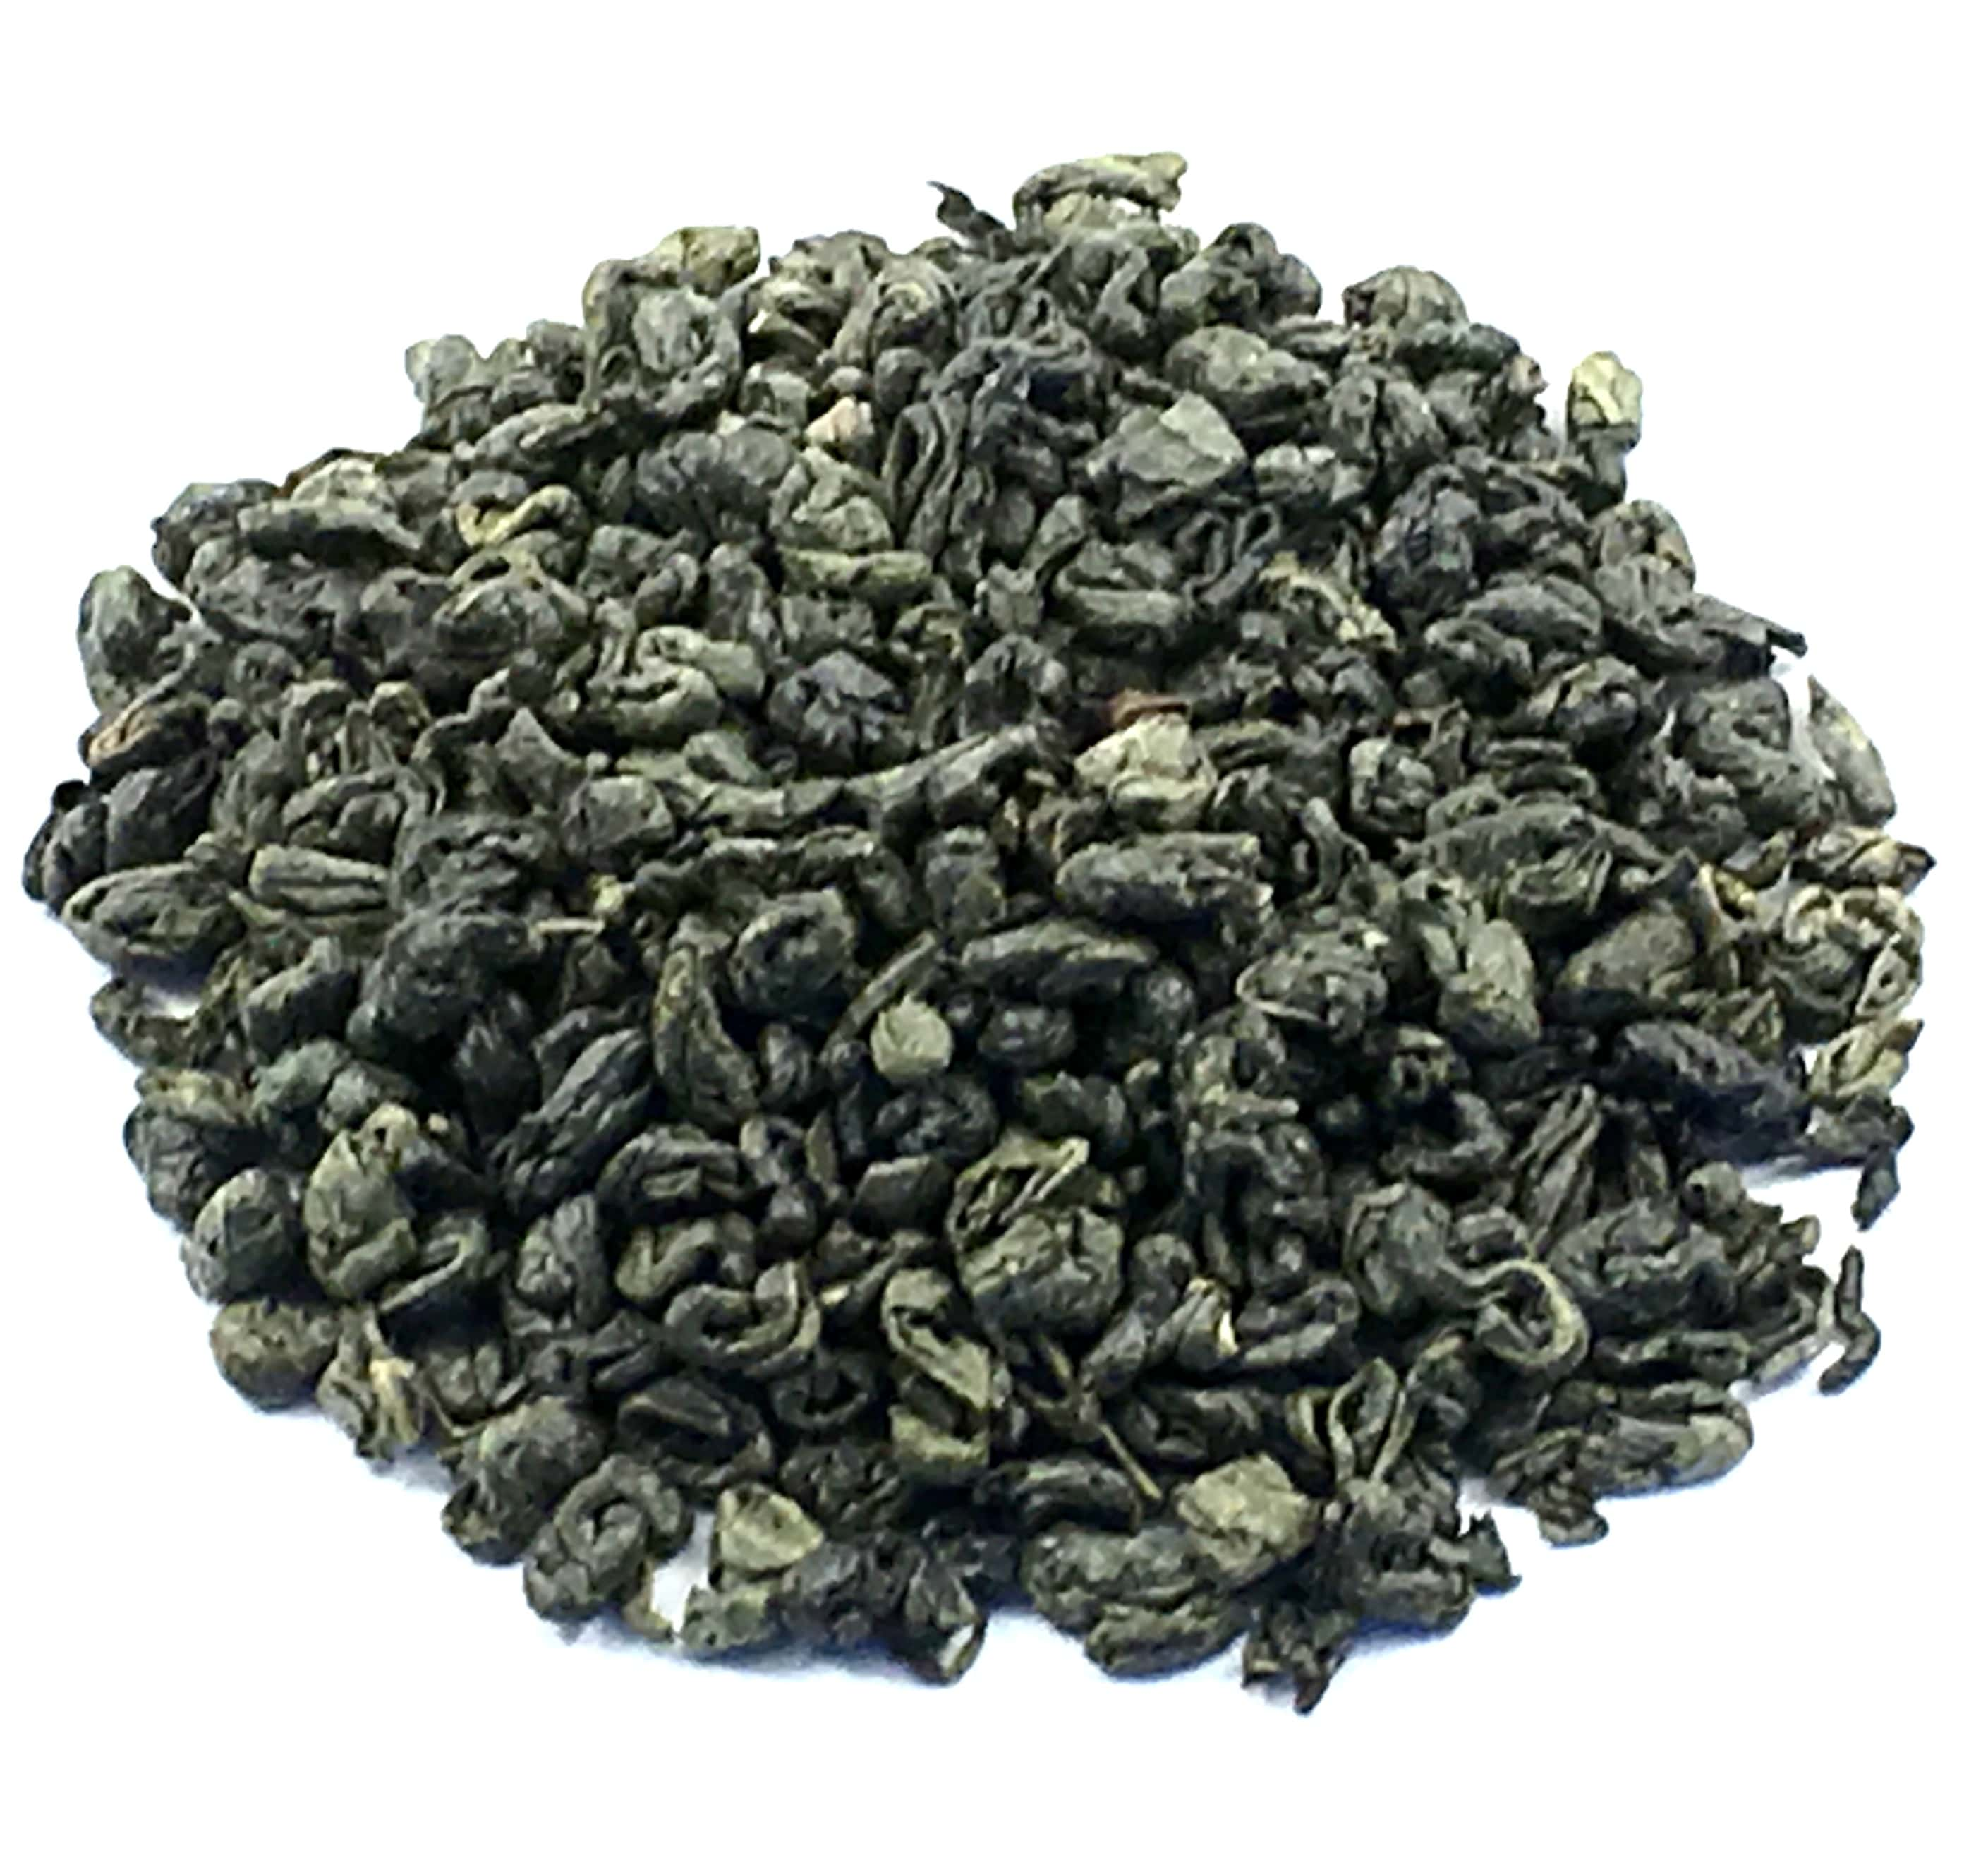 Formosa Gunpowder